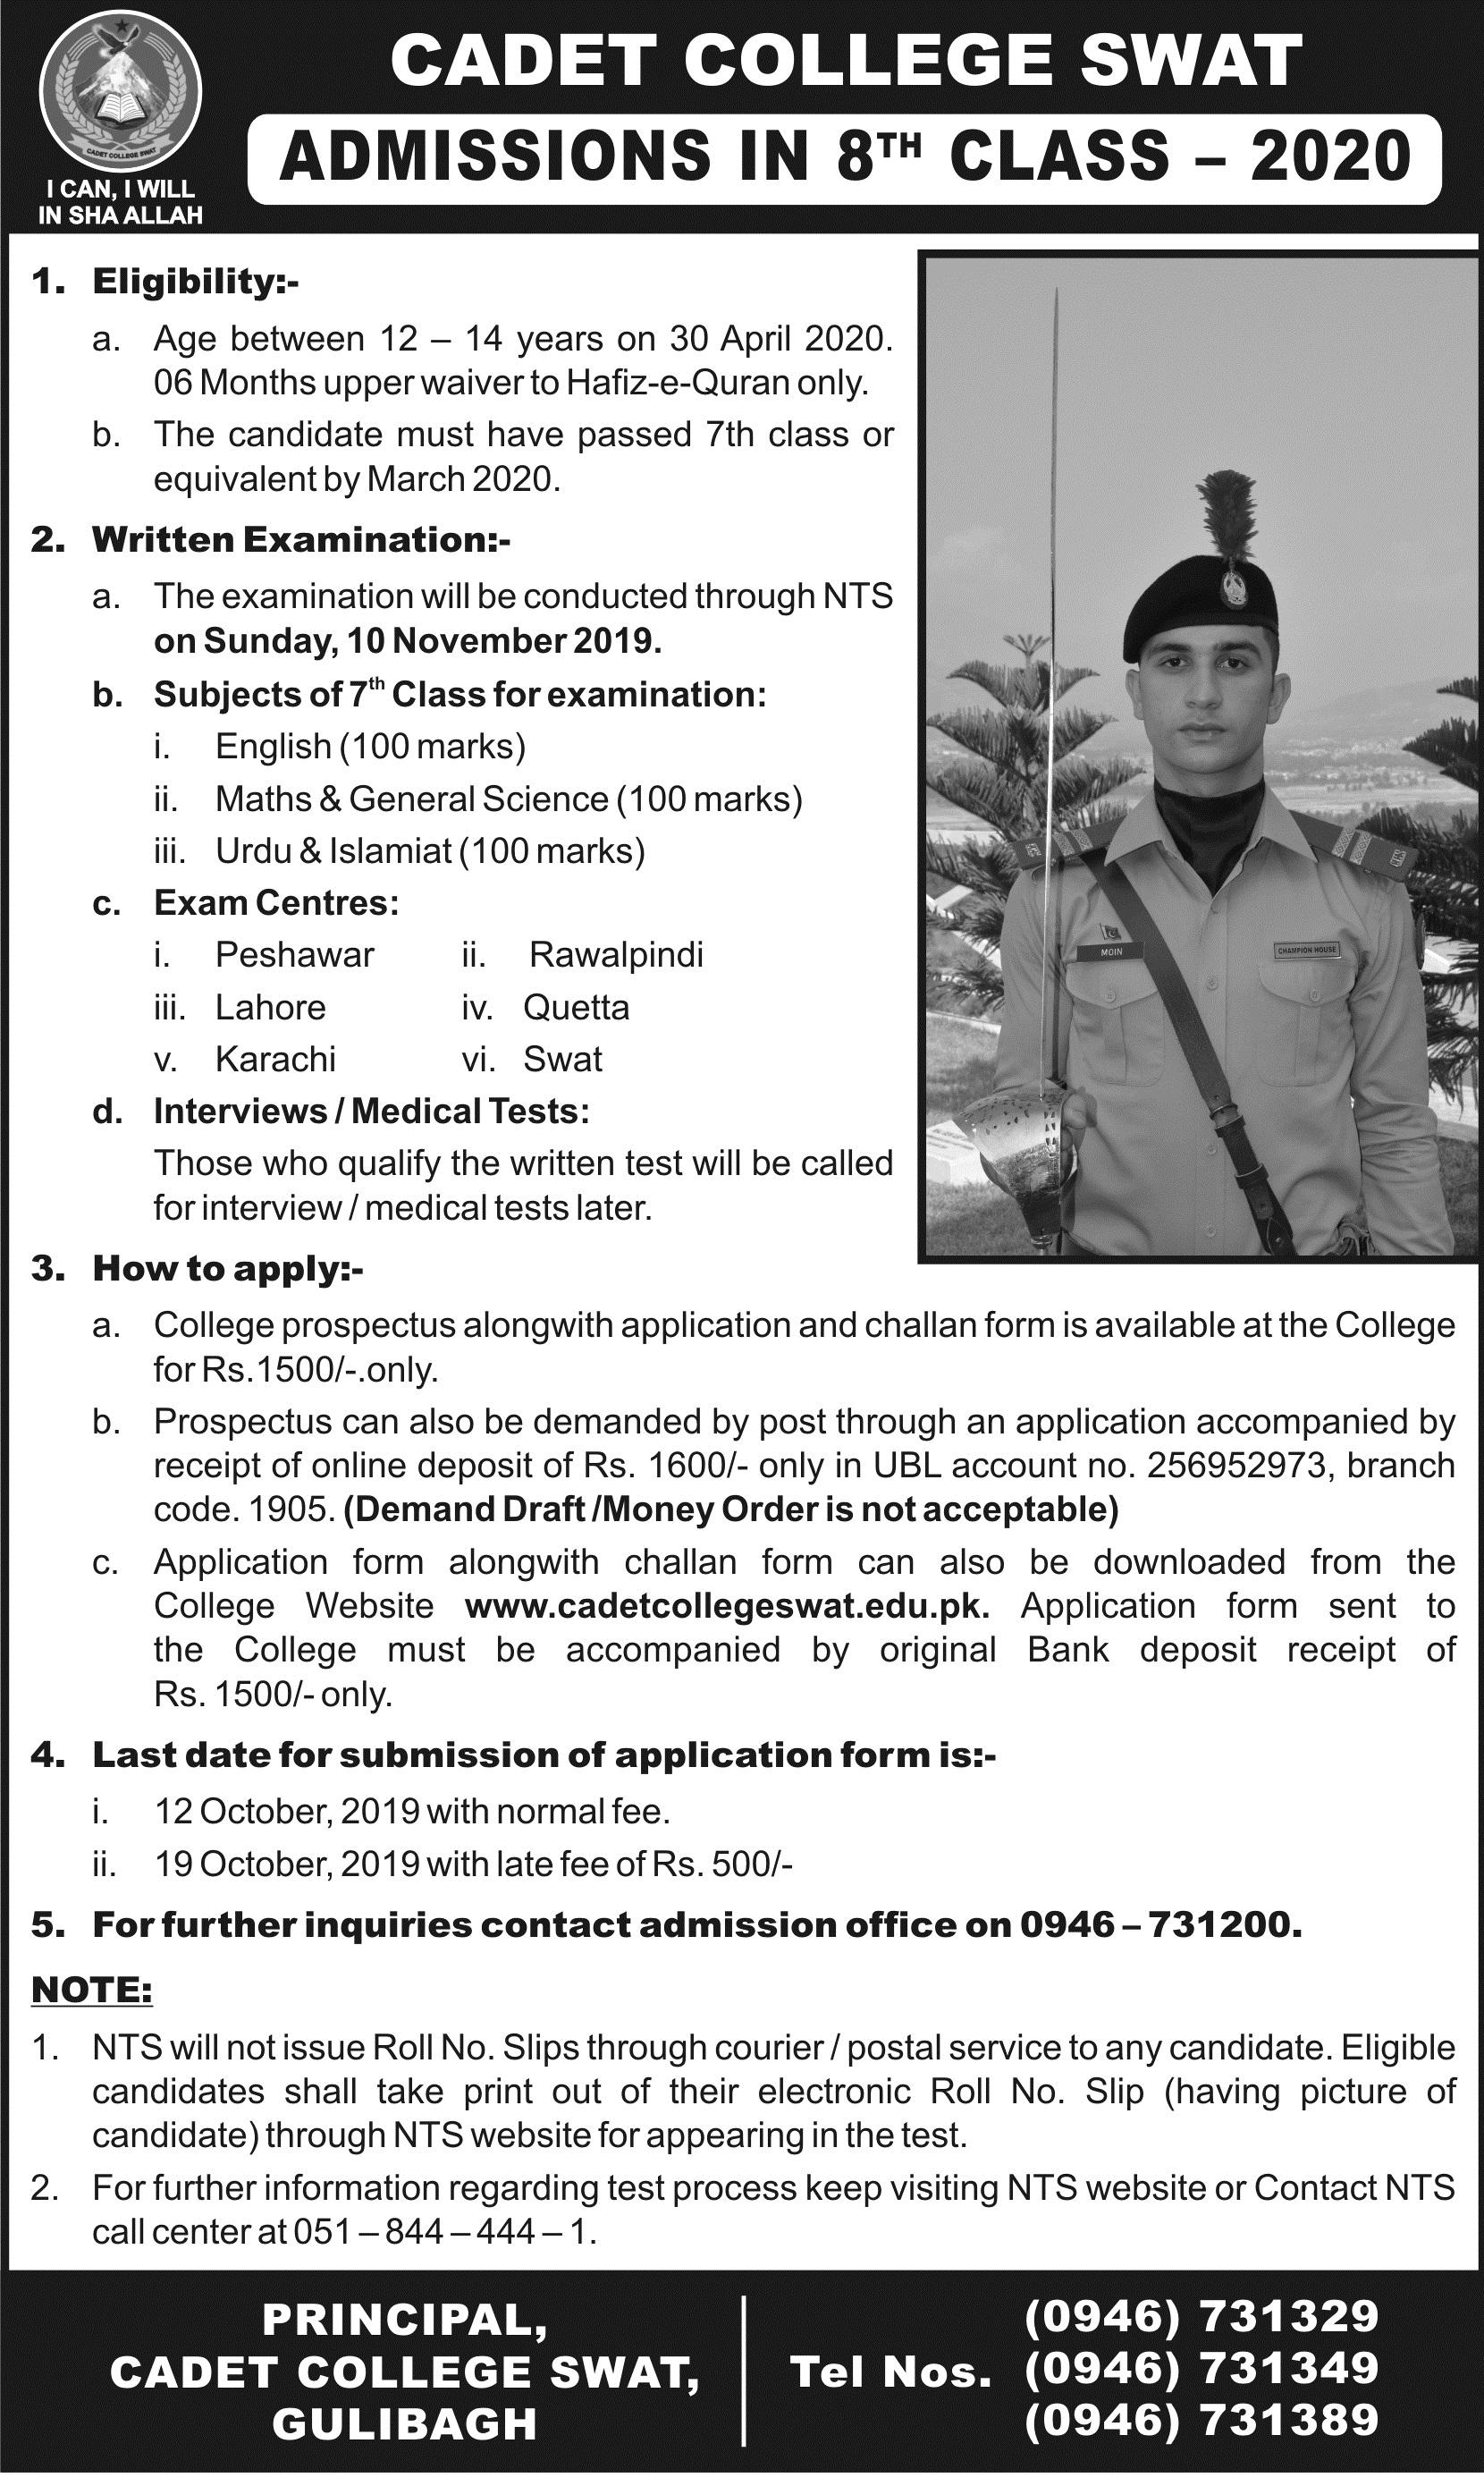 Cadet College Swat 8th Class Admission 2020 Form, Entry Test